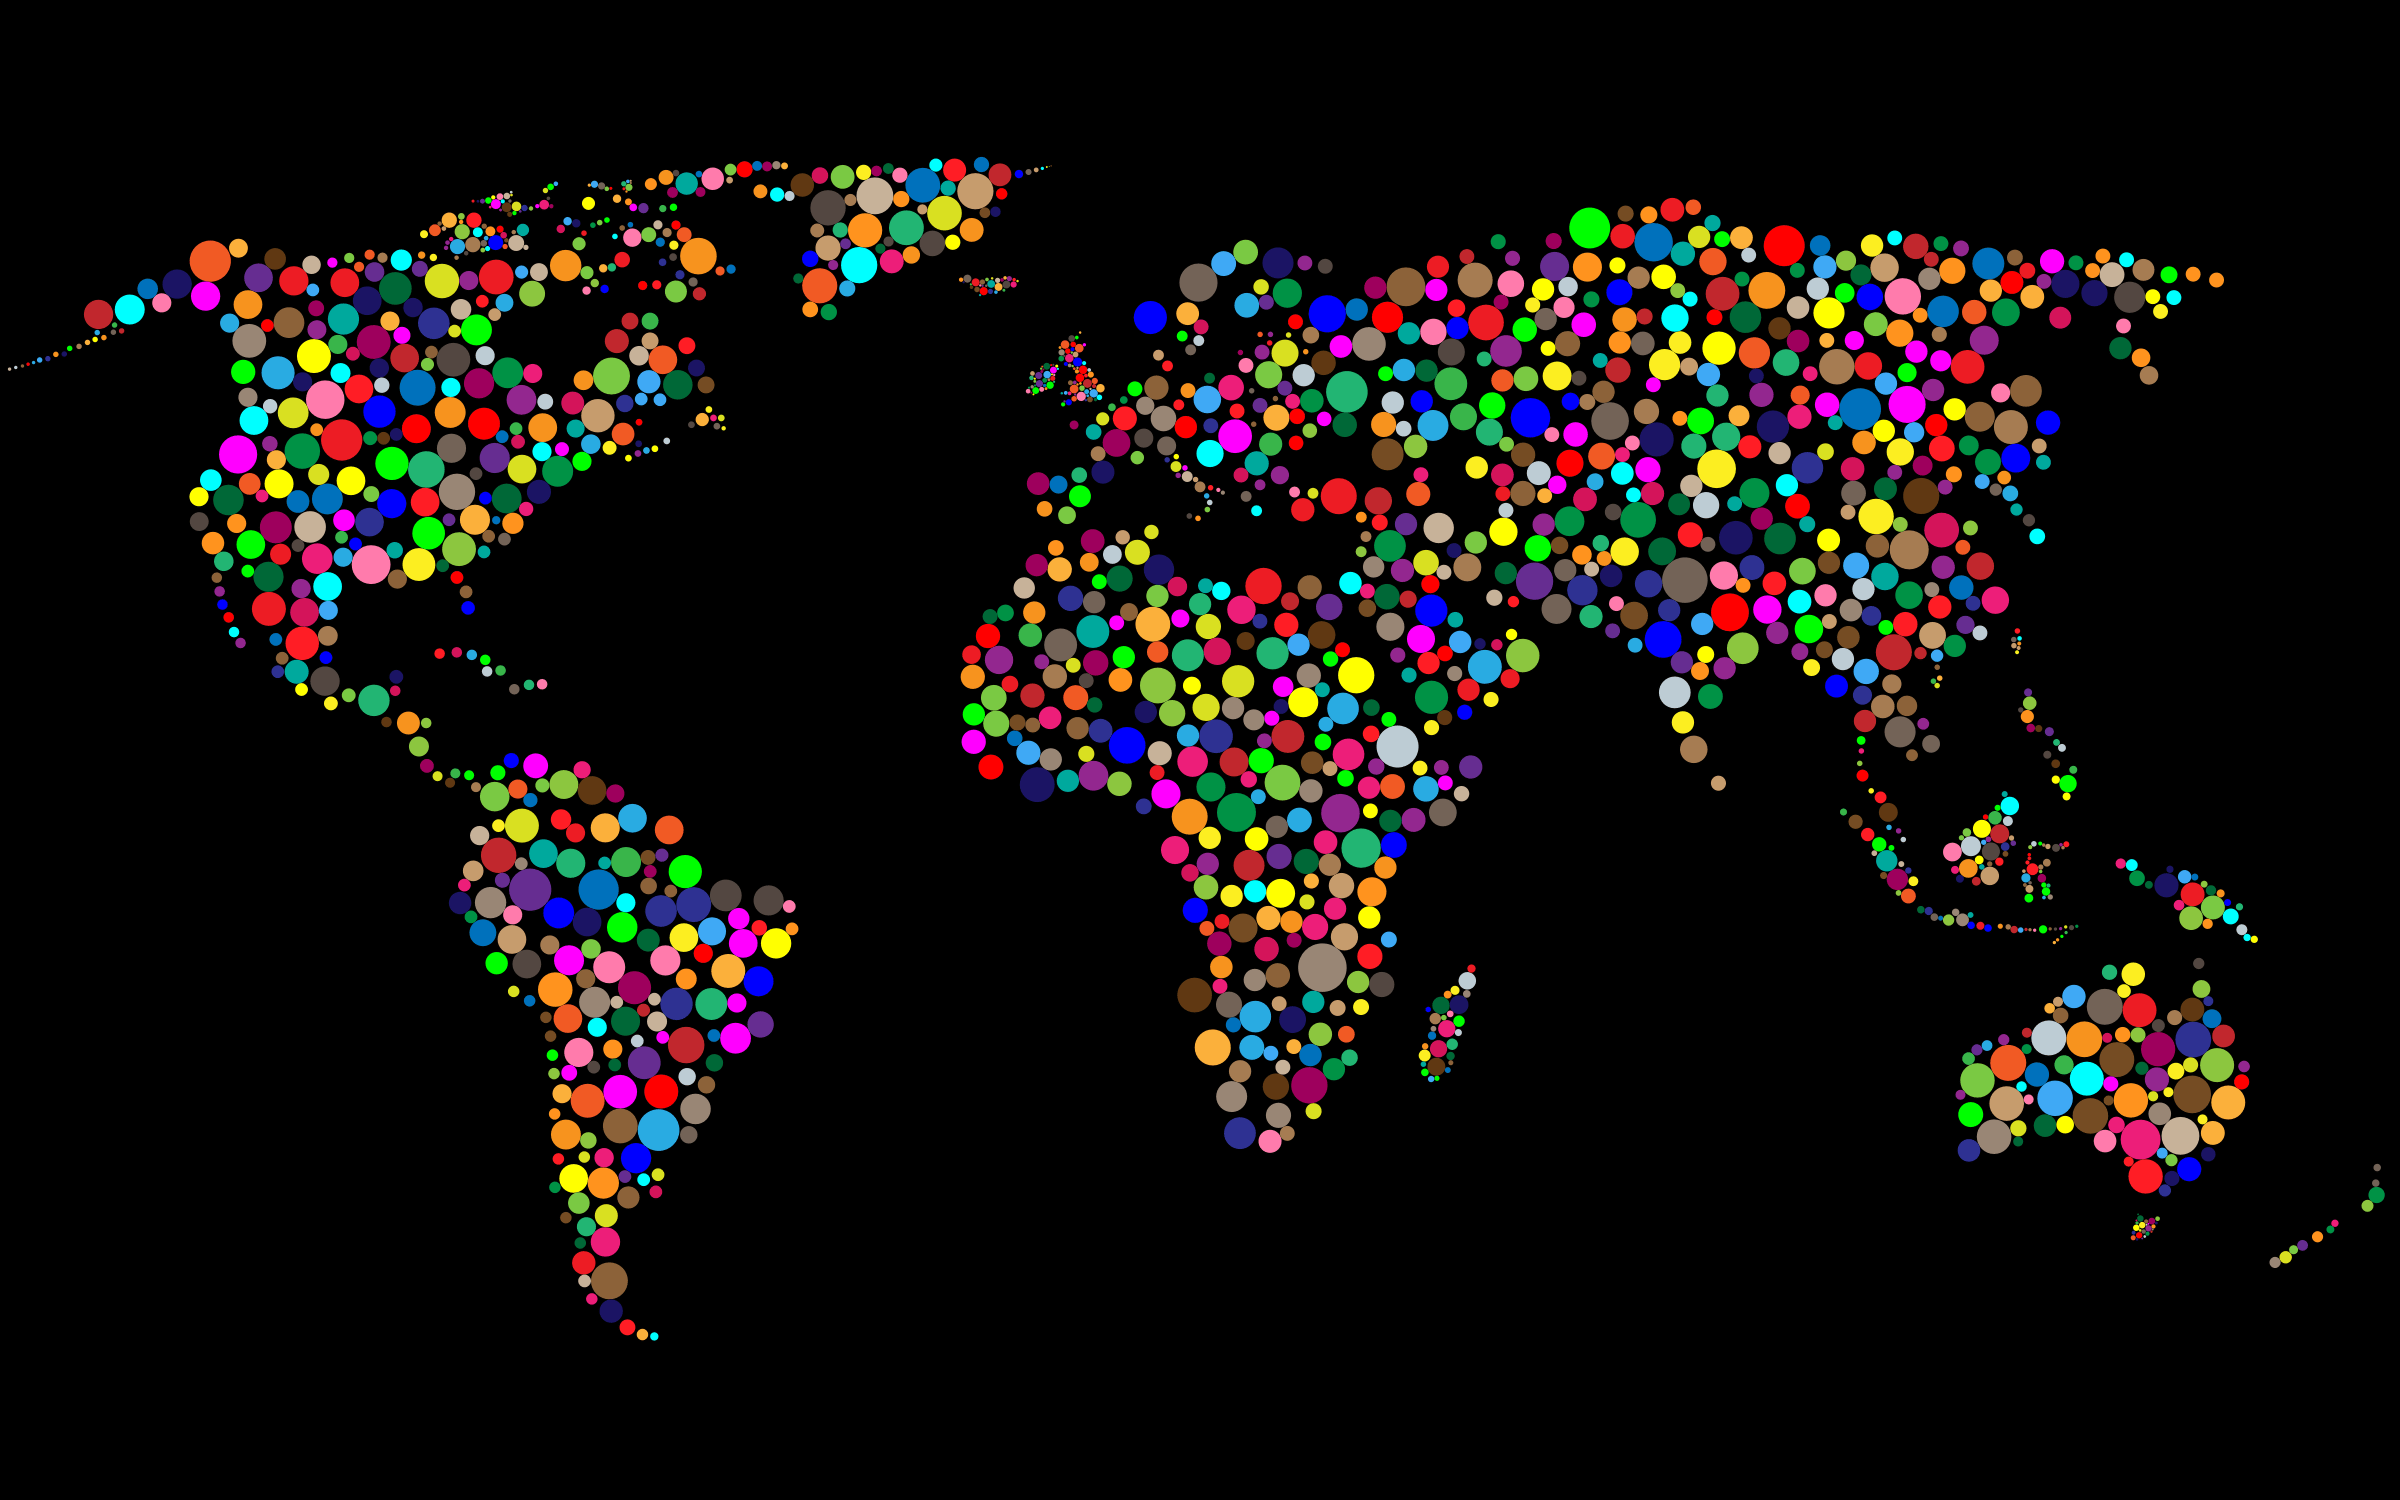 Colorful Circles World Map With Background 5 Icons Png